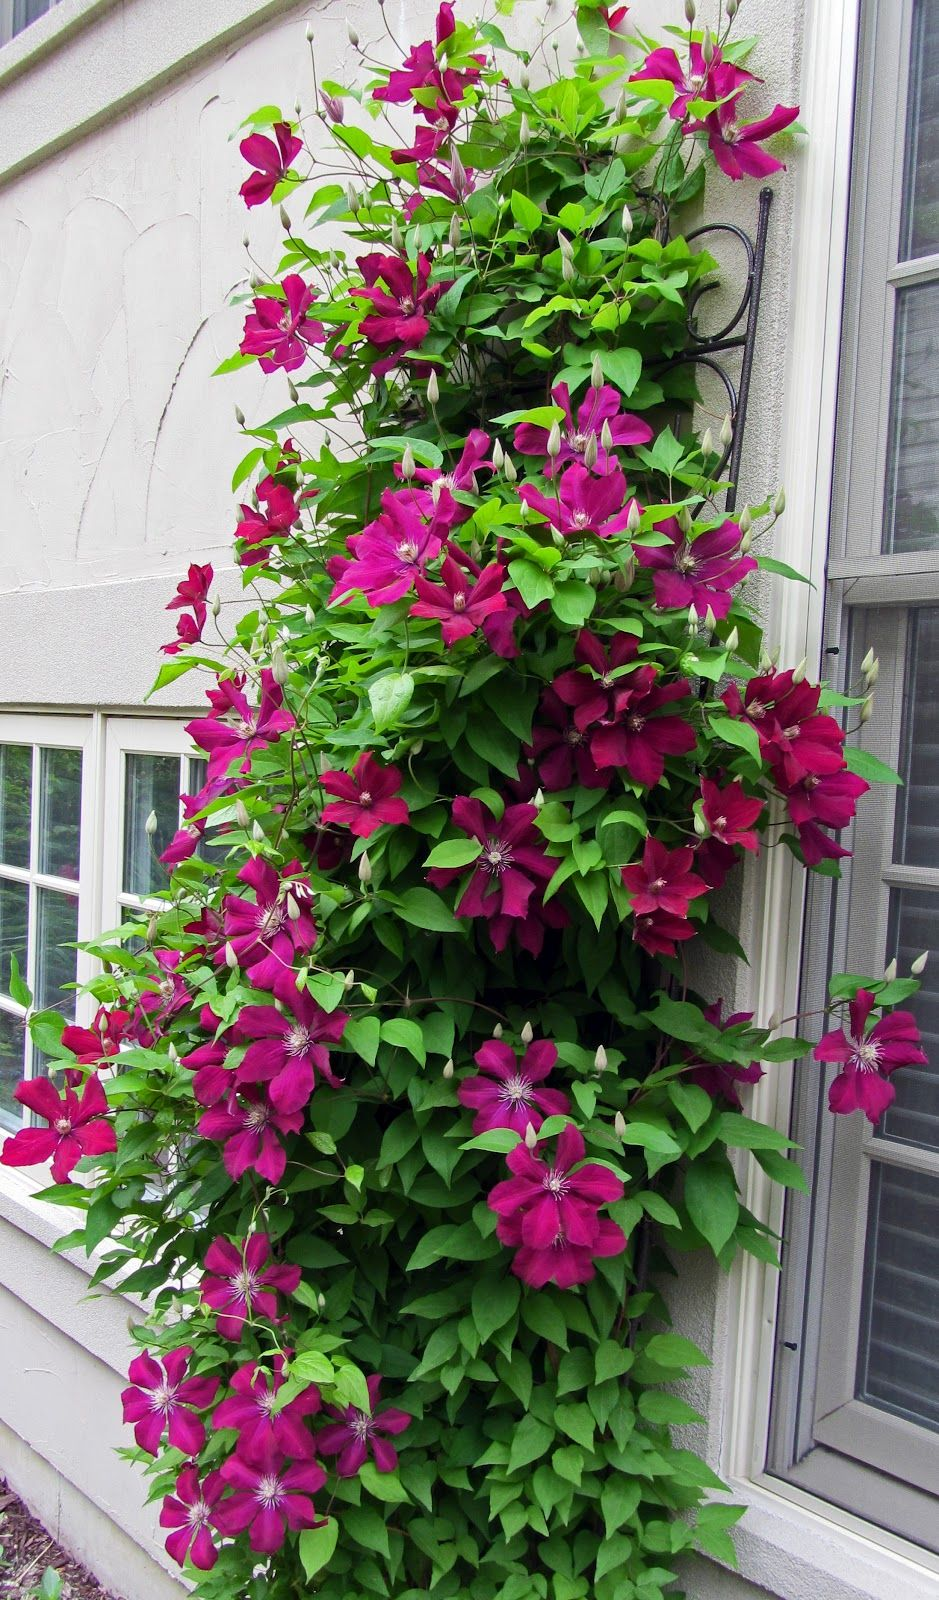 clematis rouge cardinal google search clematis. Black Bedroom Furniture Sets. Home Design Ideas